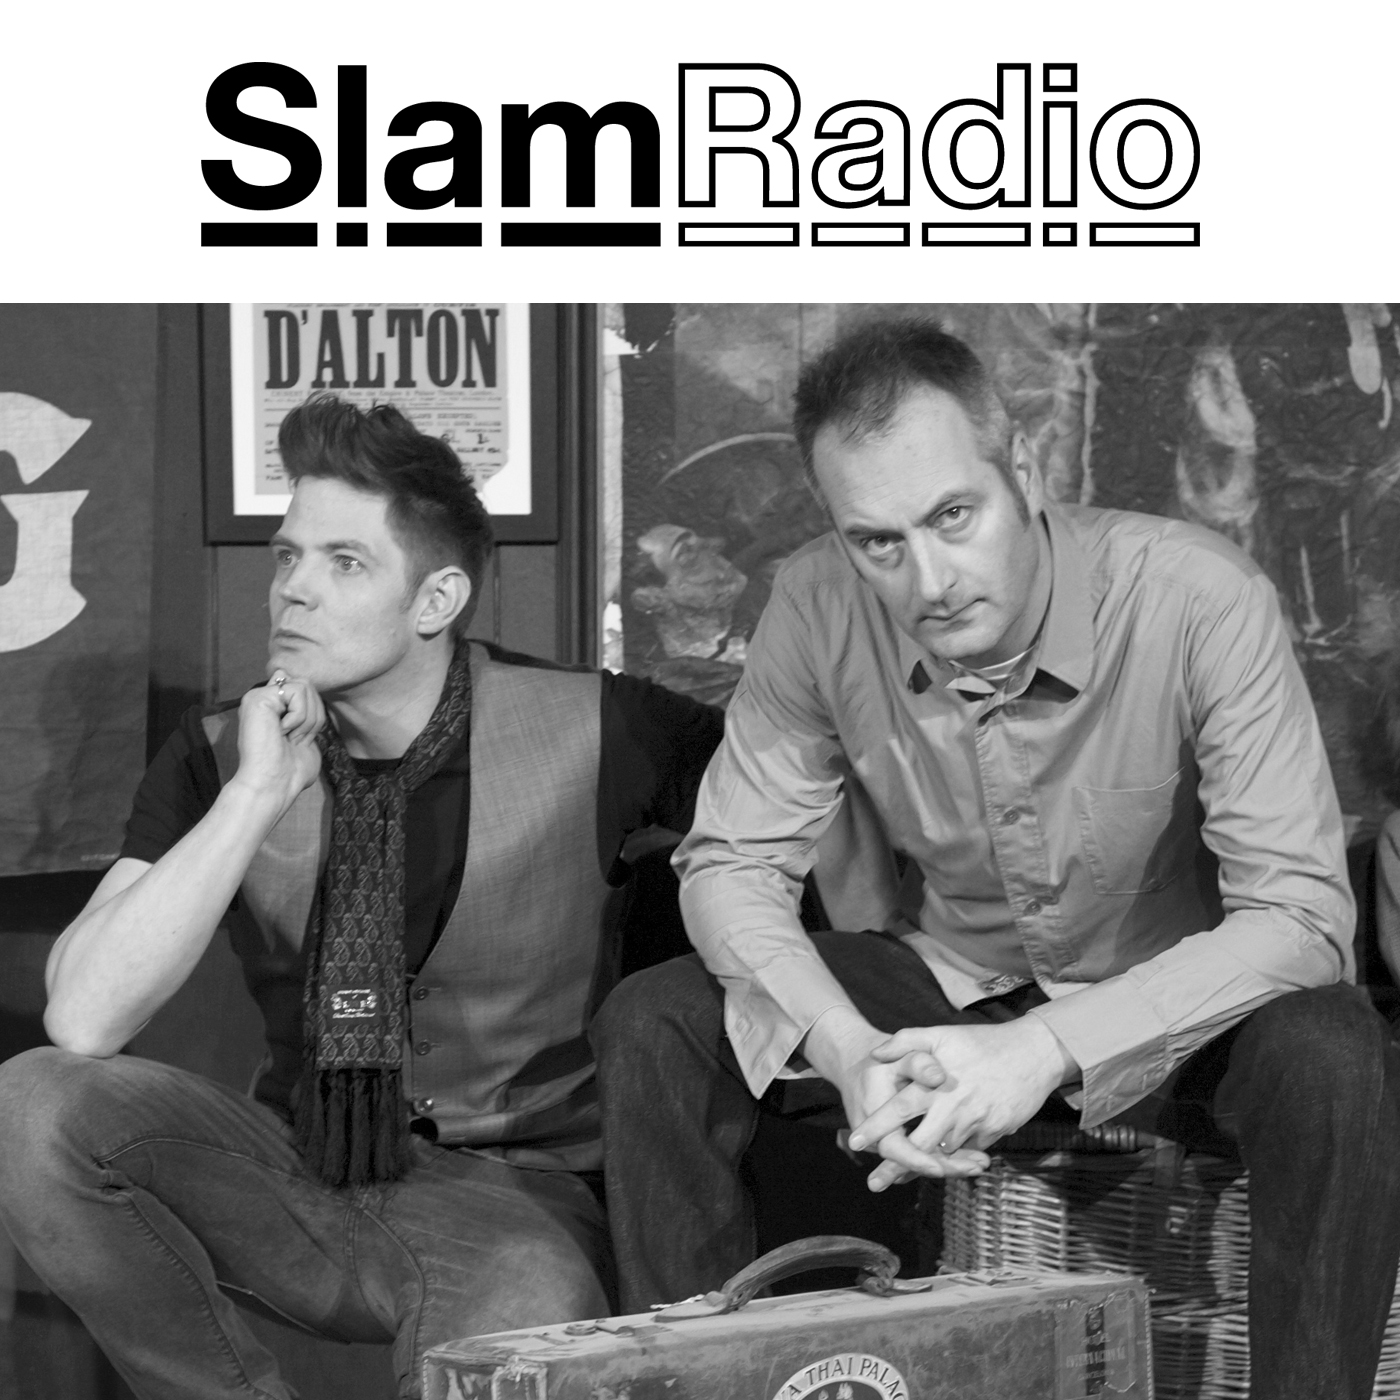 Delta Podcasts - Slam Radio by Soma Records (08.12.2017)